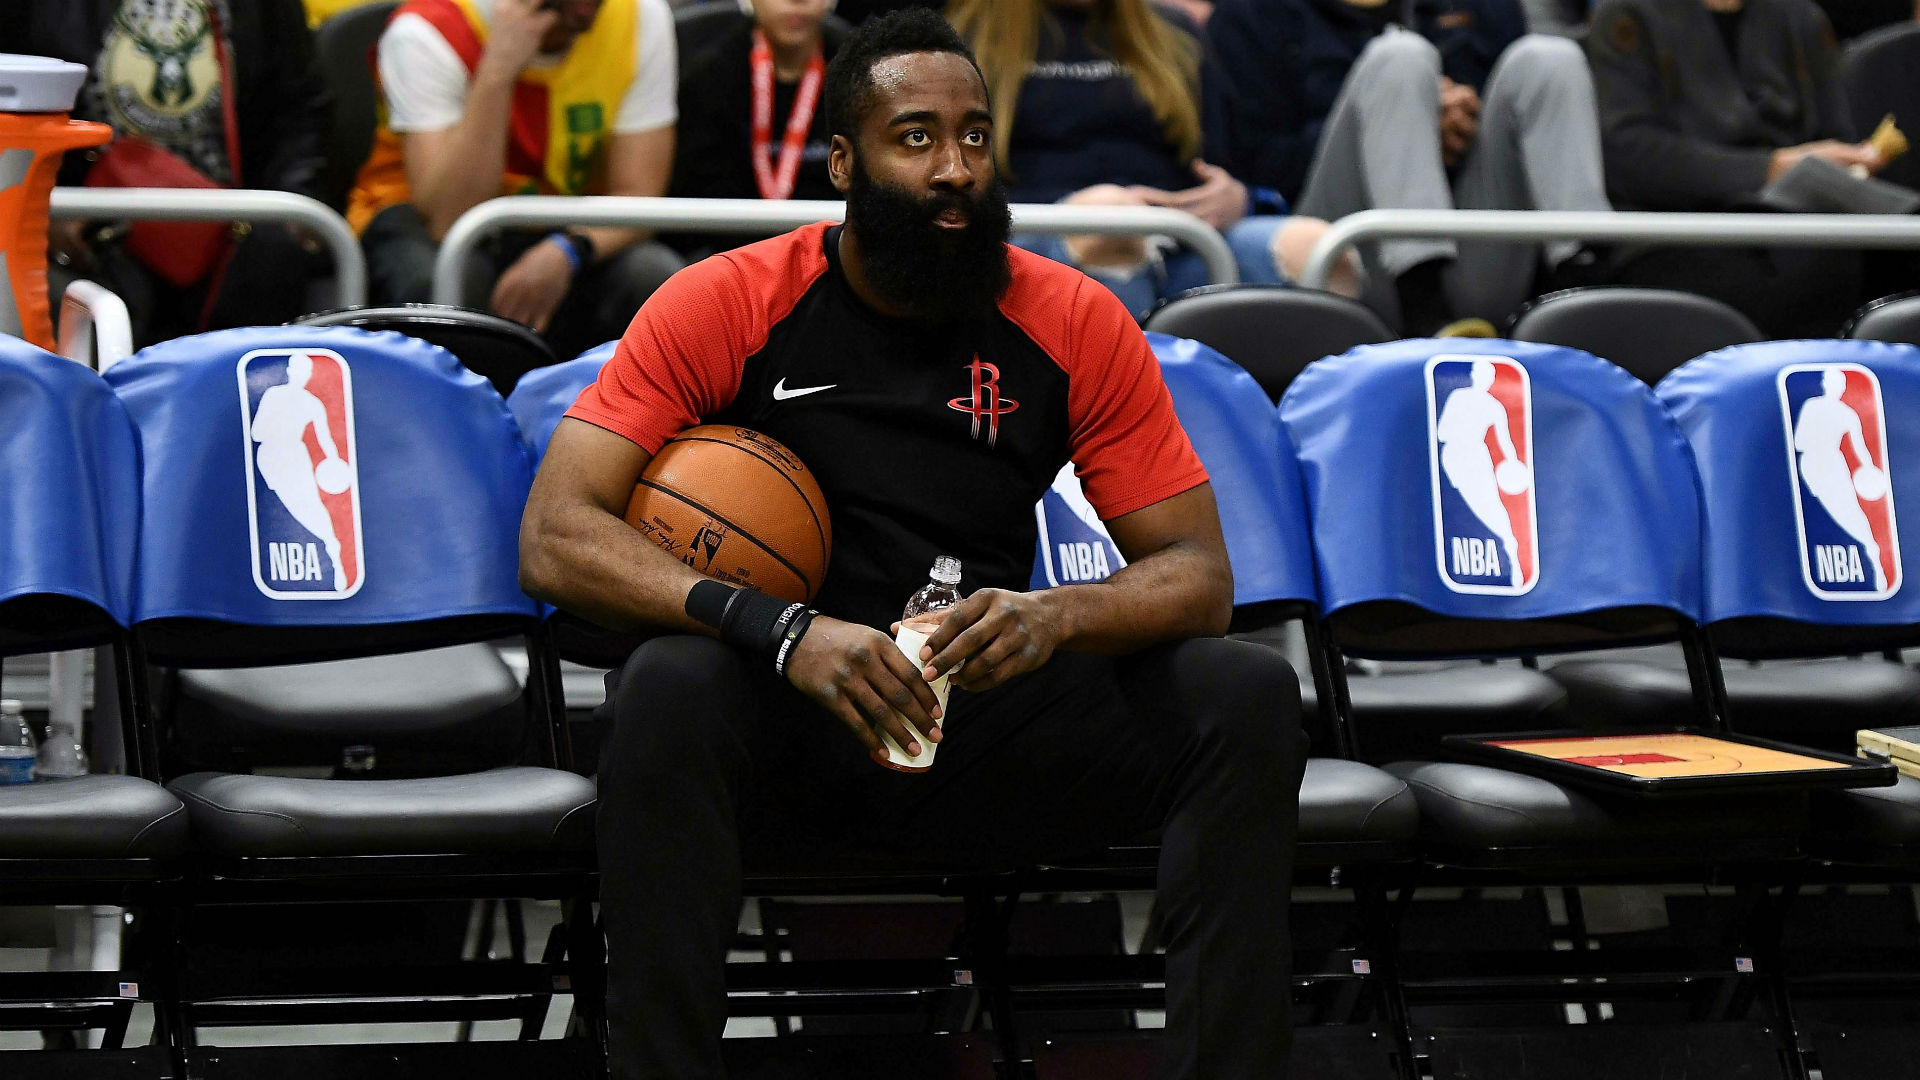 Harden still eyeing second seed after Rockets' loss at Bucks